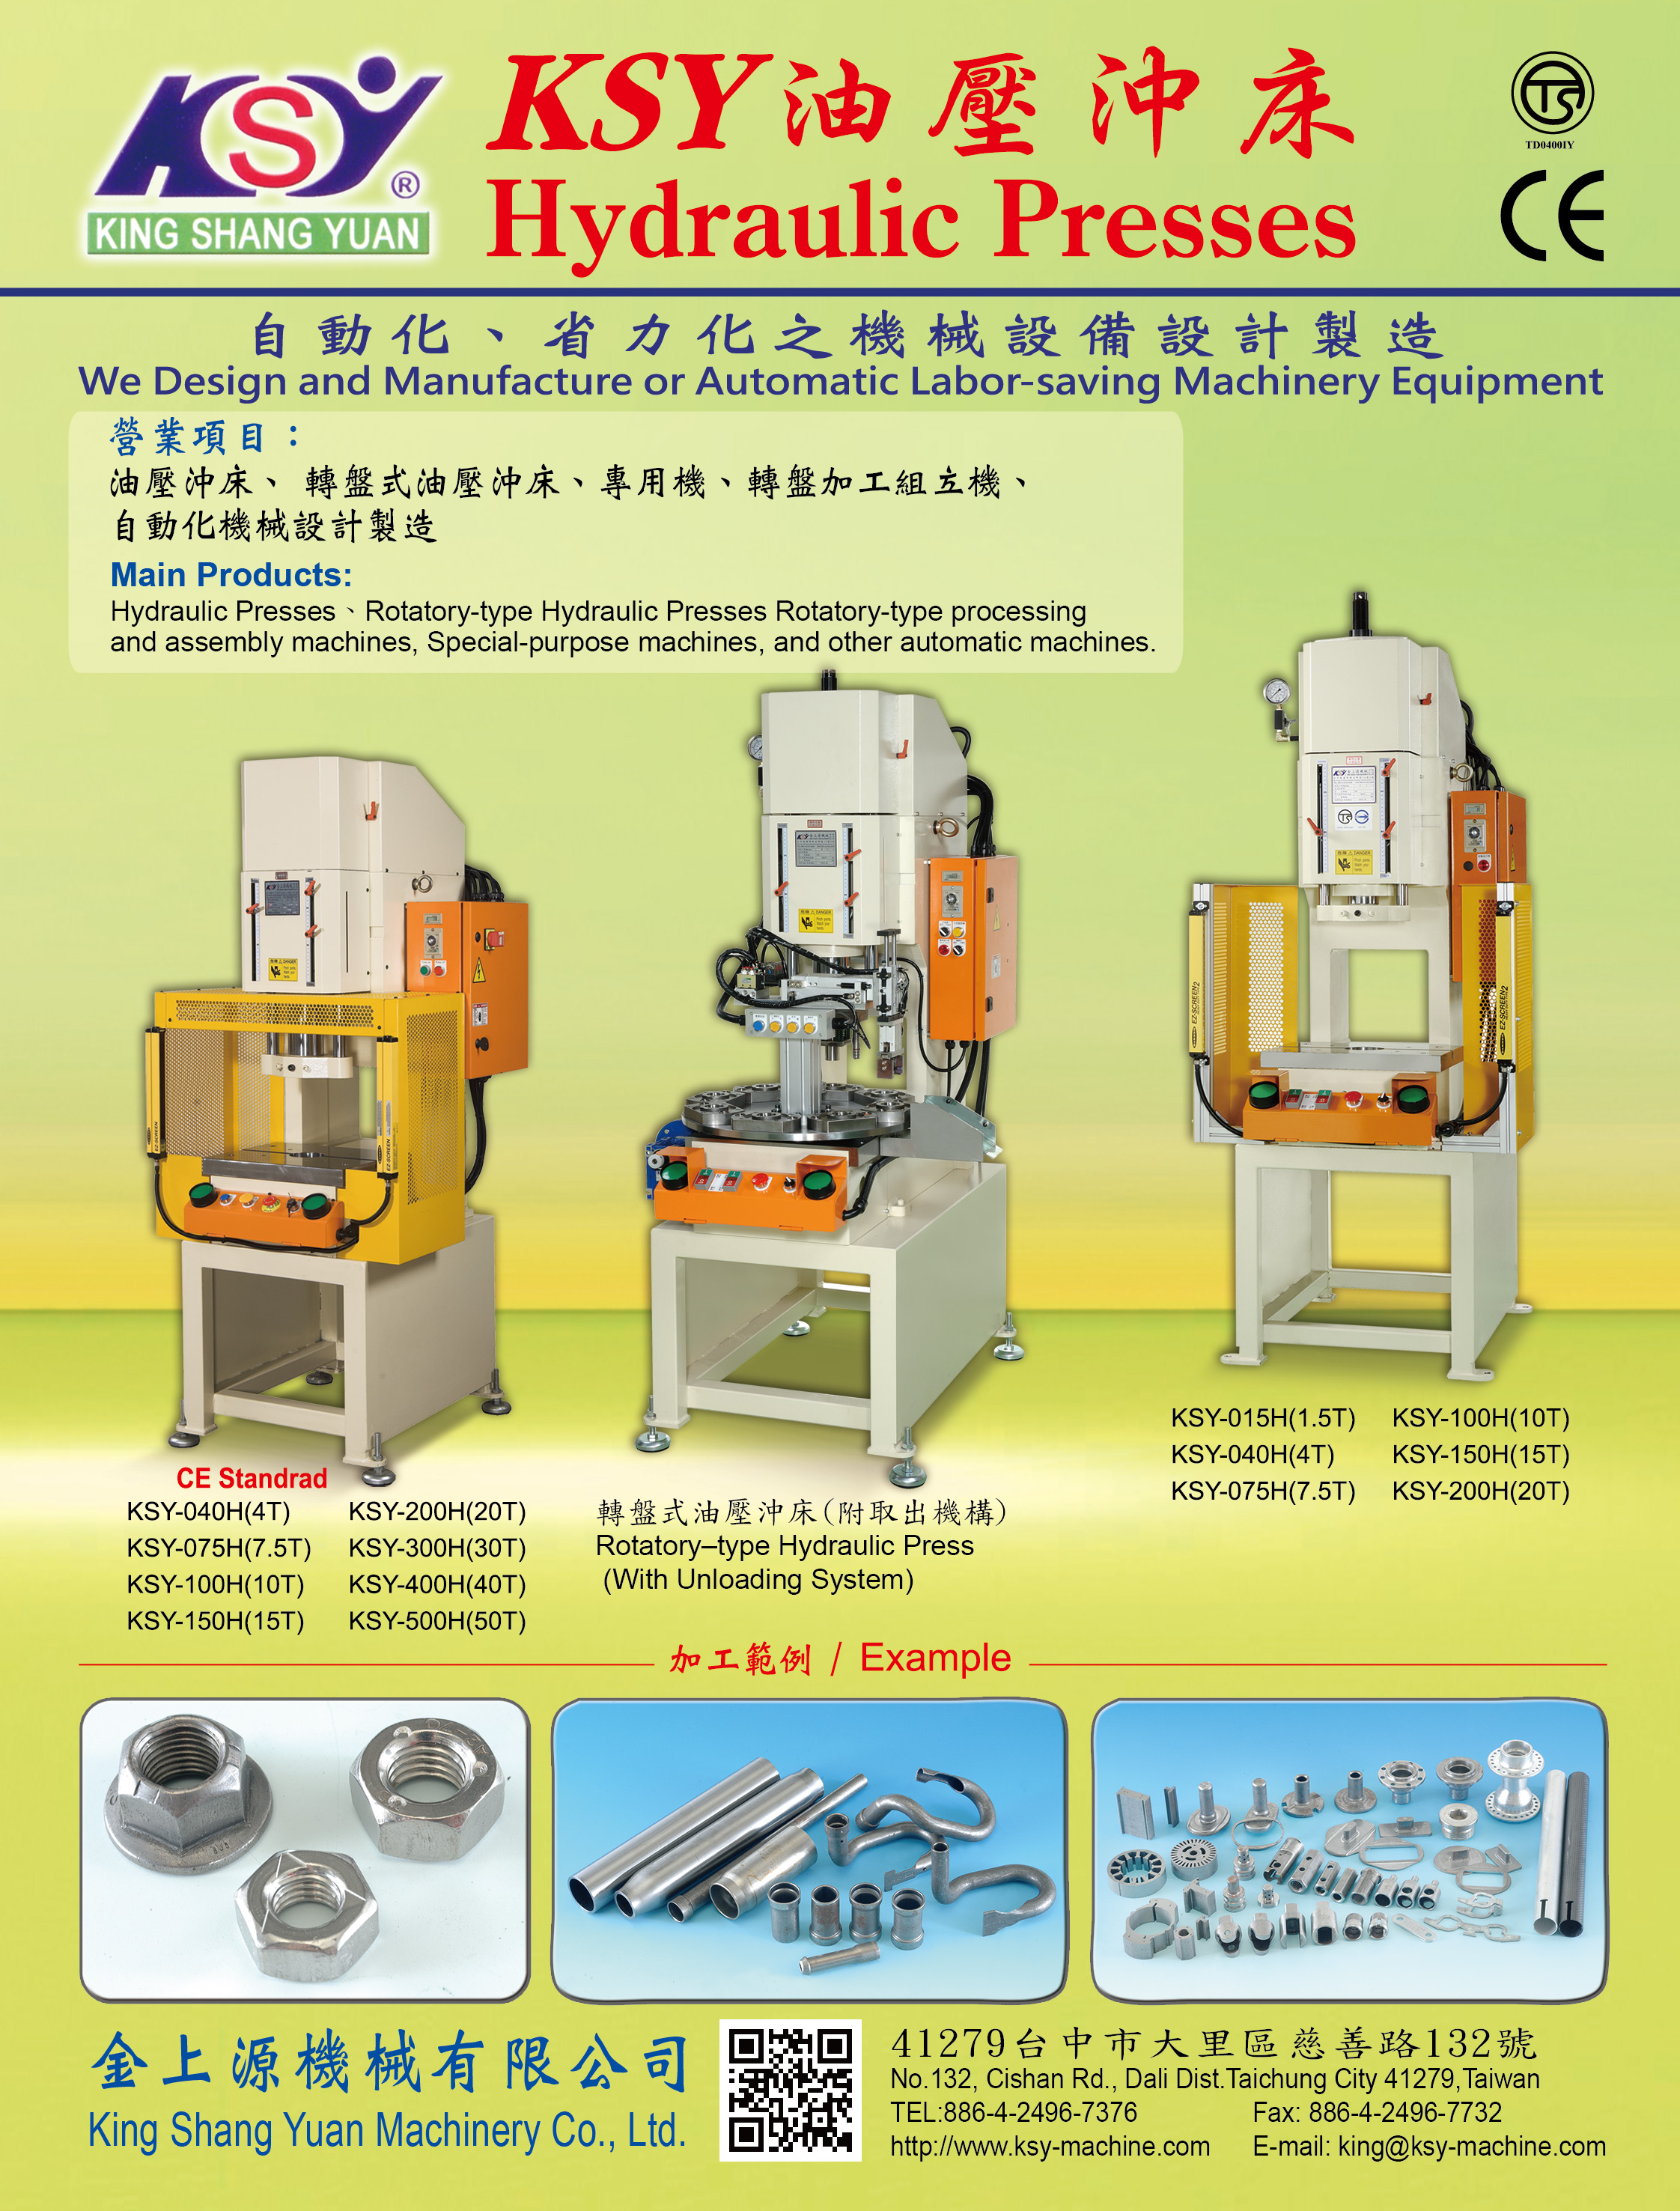 KING SHANG YUAN MACHINERY CO.,LTD.